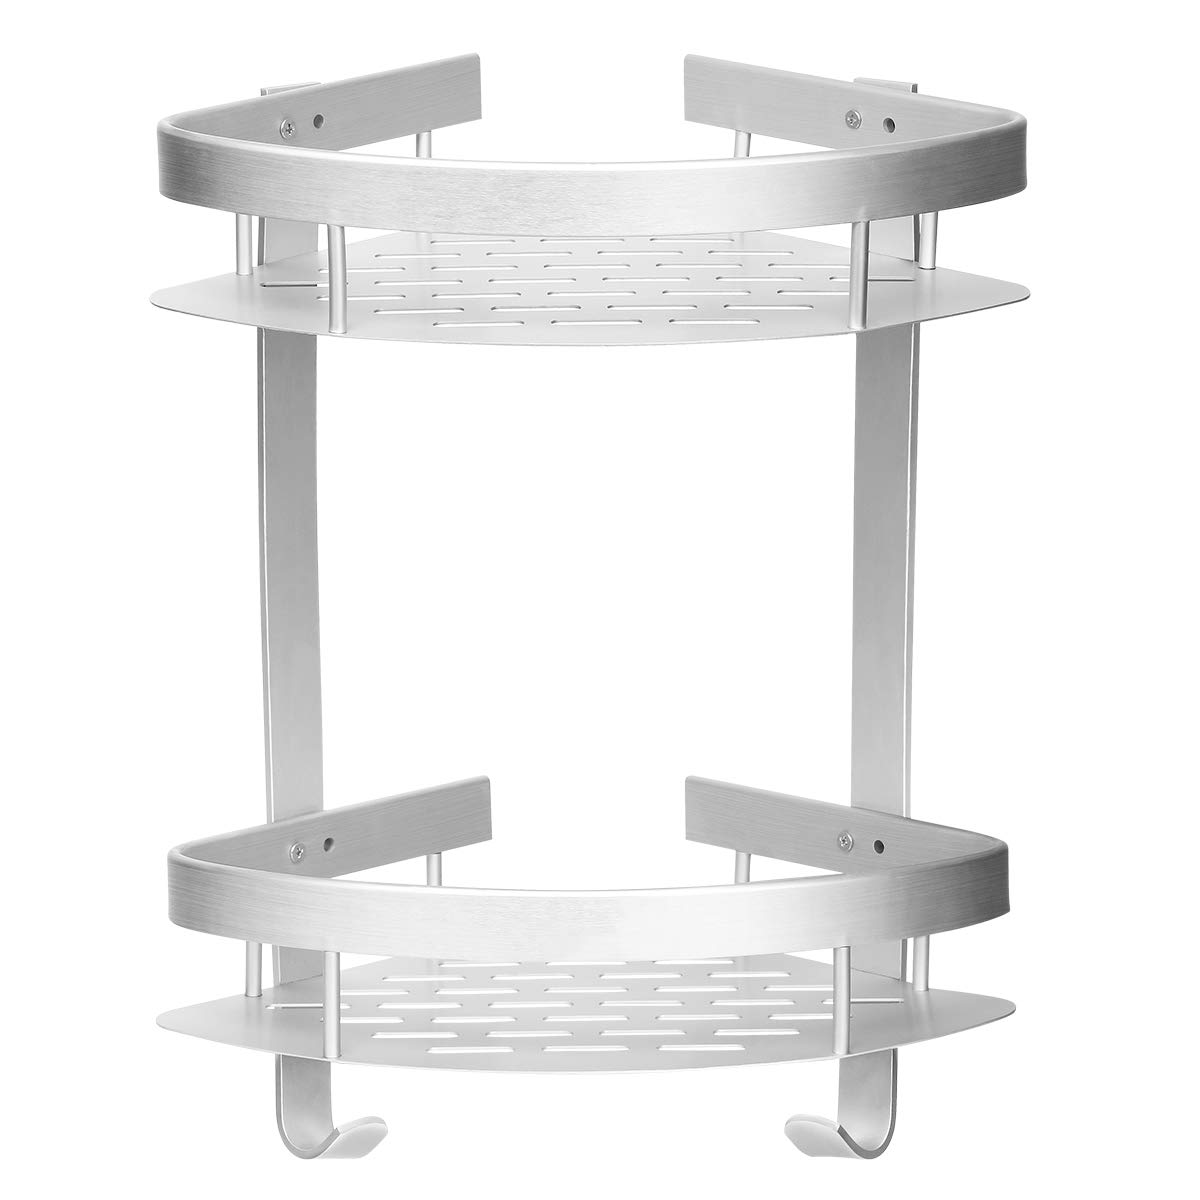 HOMEIDEAS Bathroom Shelf Durable Aluminum Shower Caddy, Kitchen Storage Shelves with Hooks, 2 Tiers Corner Adhesive Shelves, No Drilling